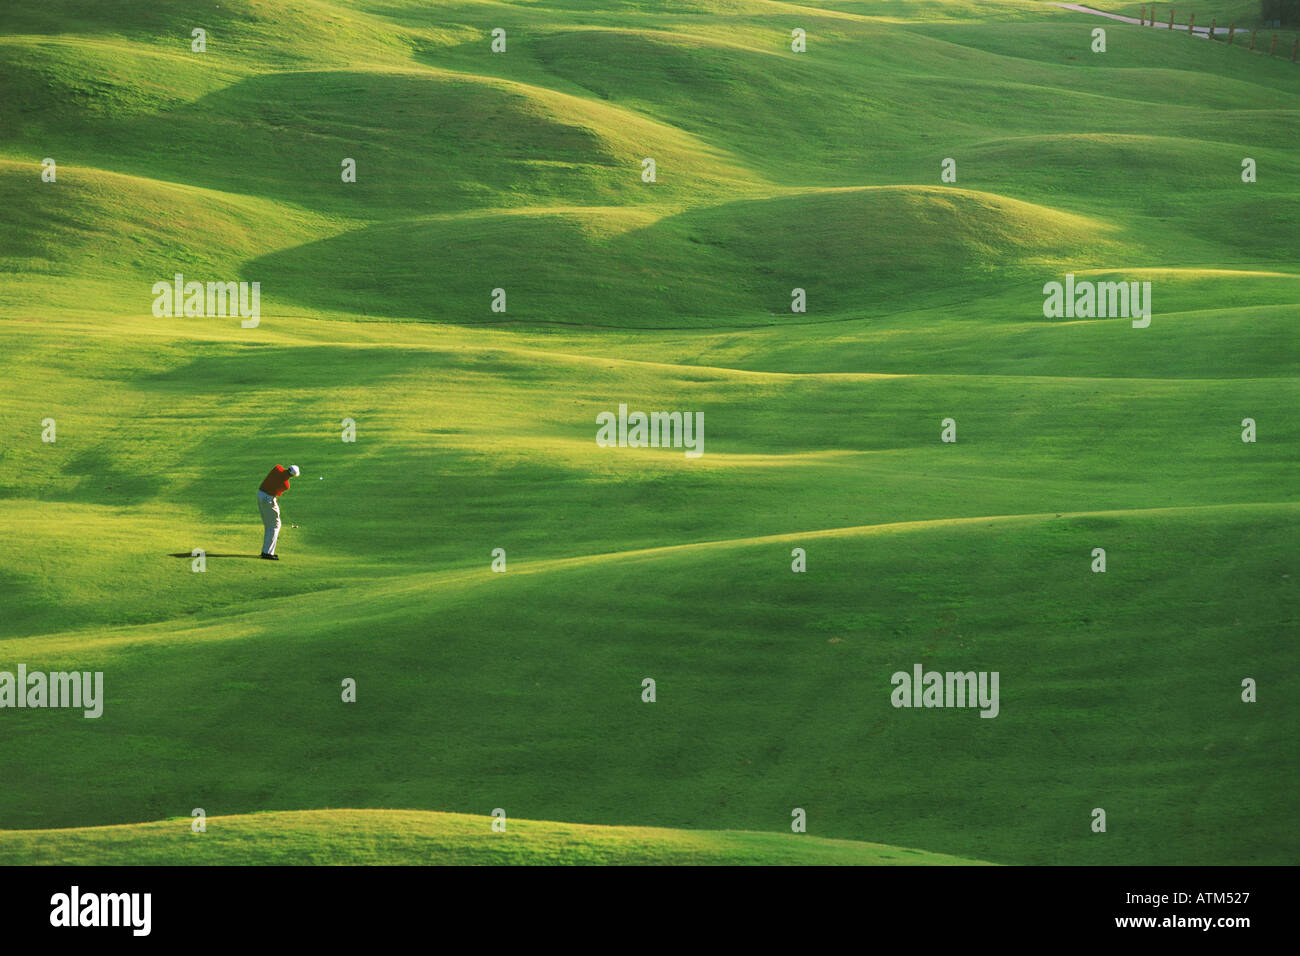 Golfer hitting fairway shot in low light - Stock Image